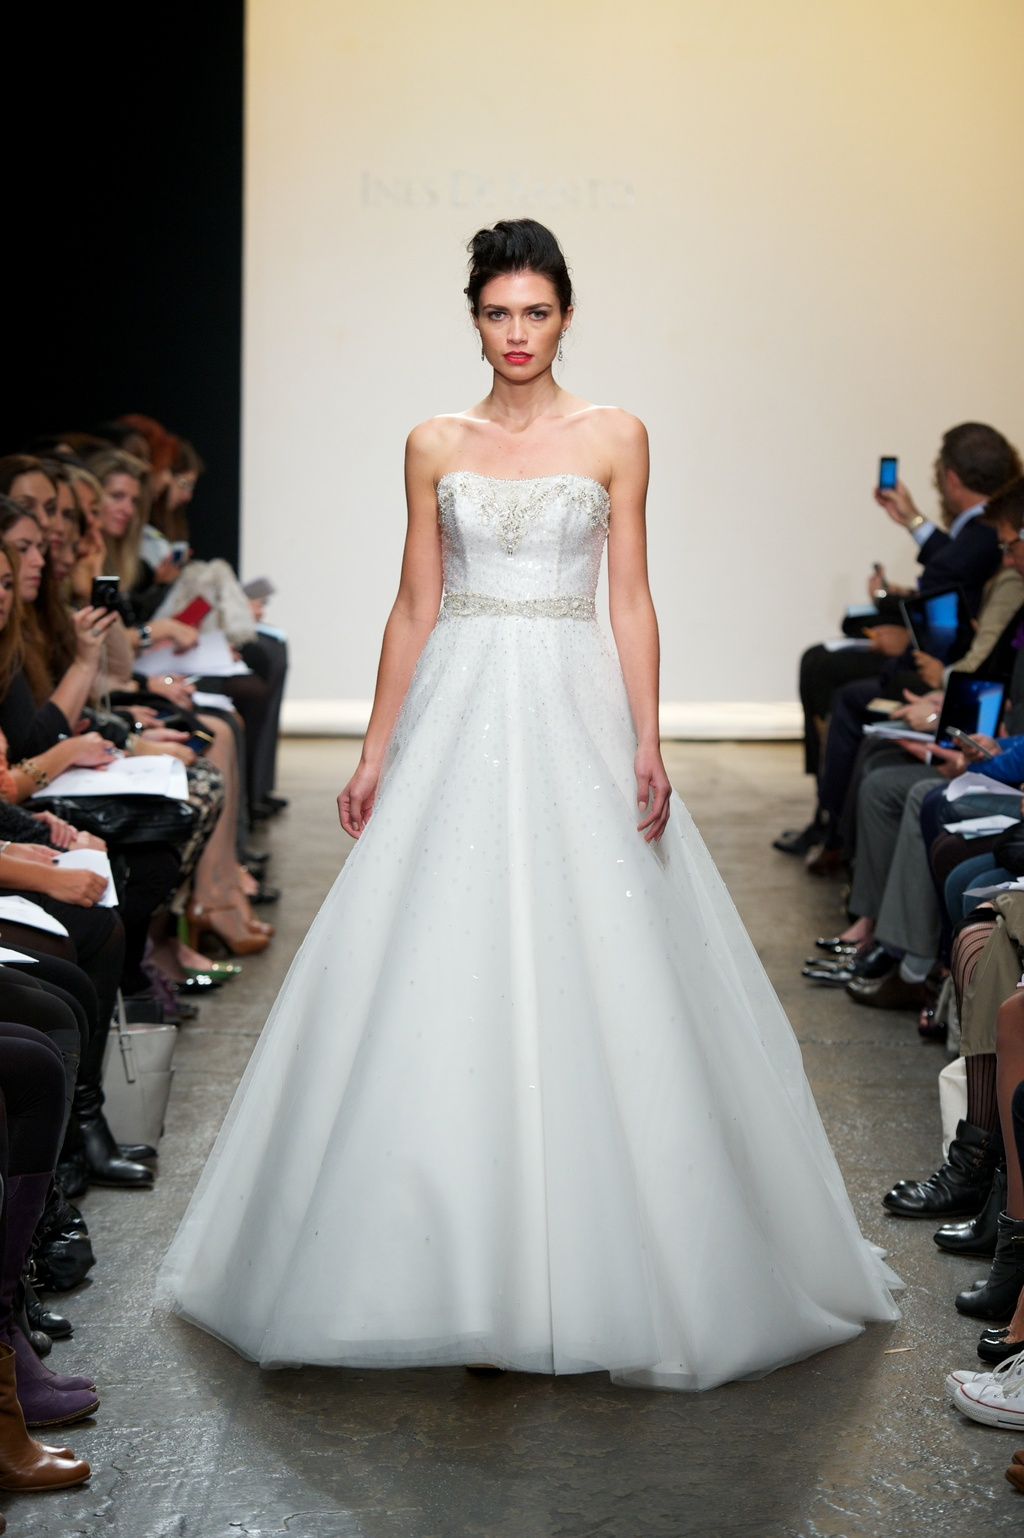 2013 Wedding Dress by Ines di Santo Reale